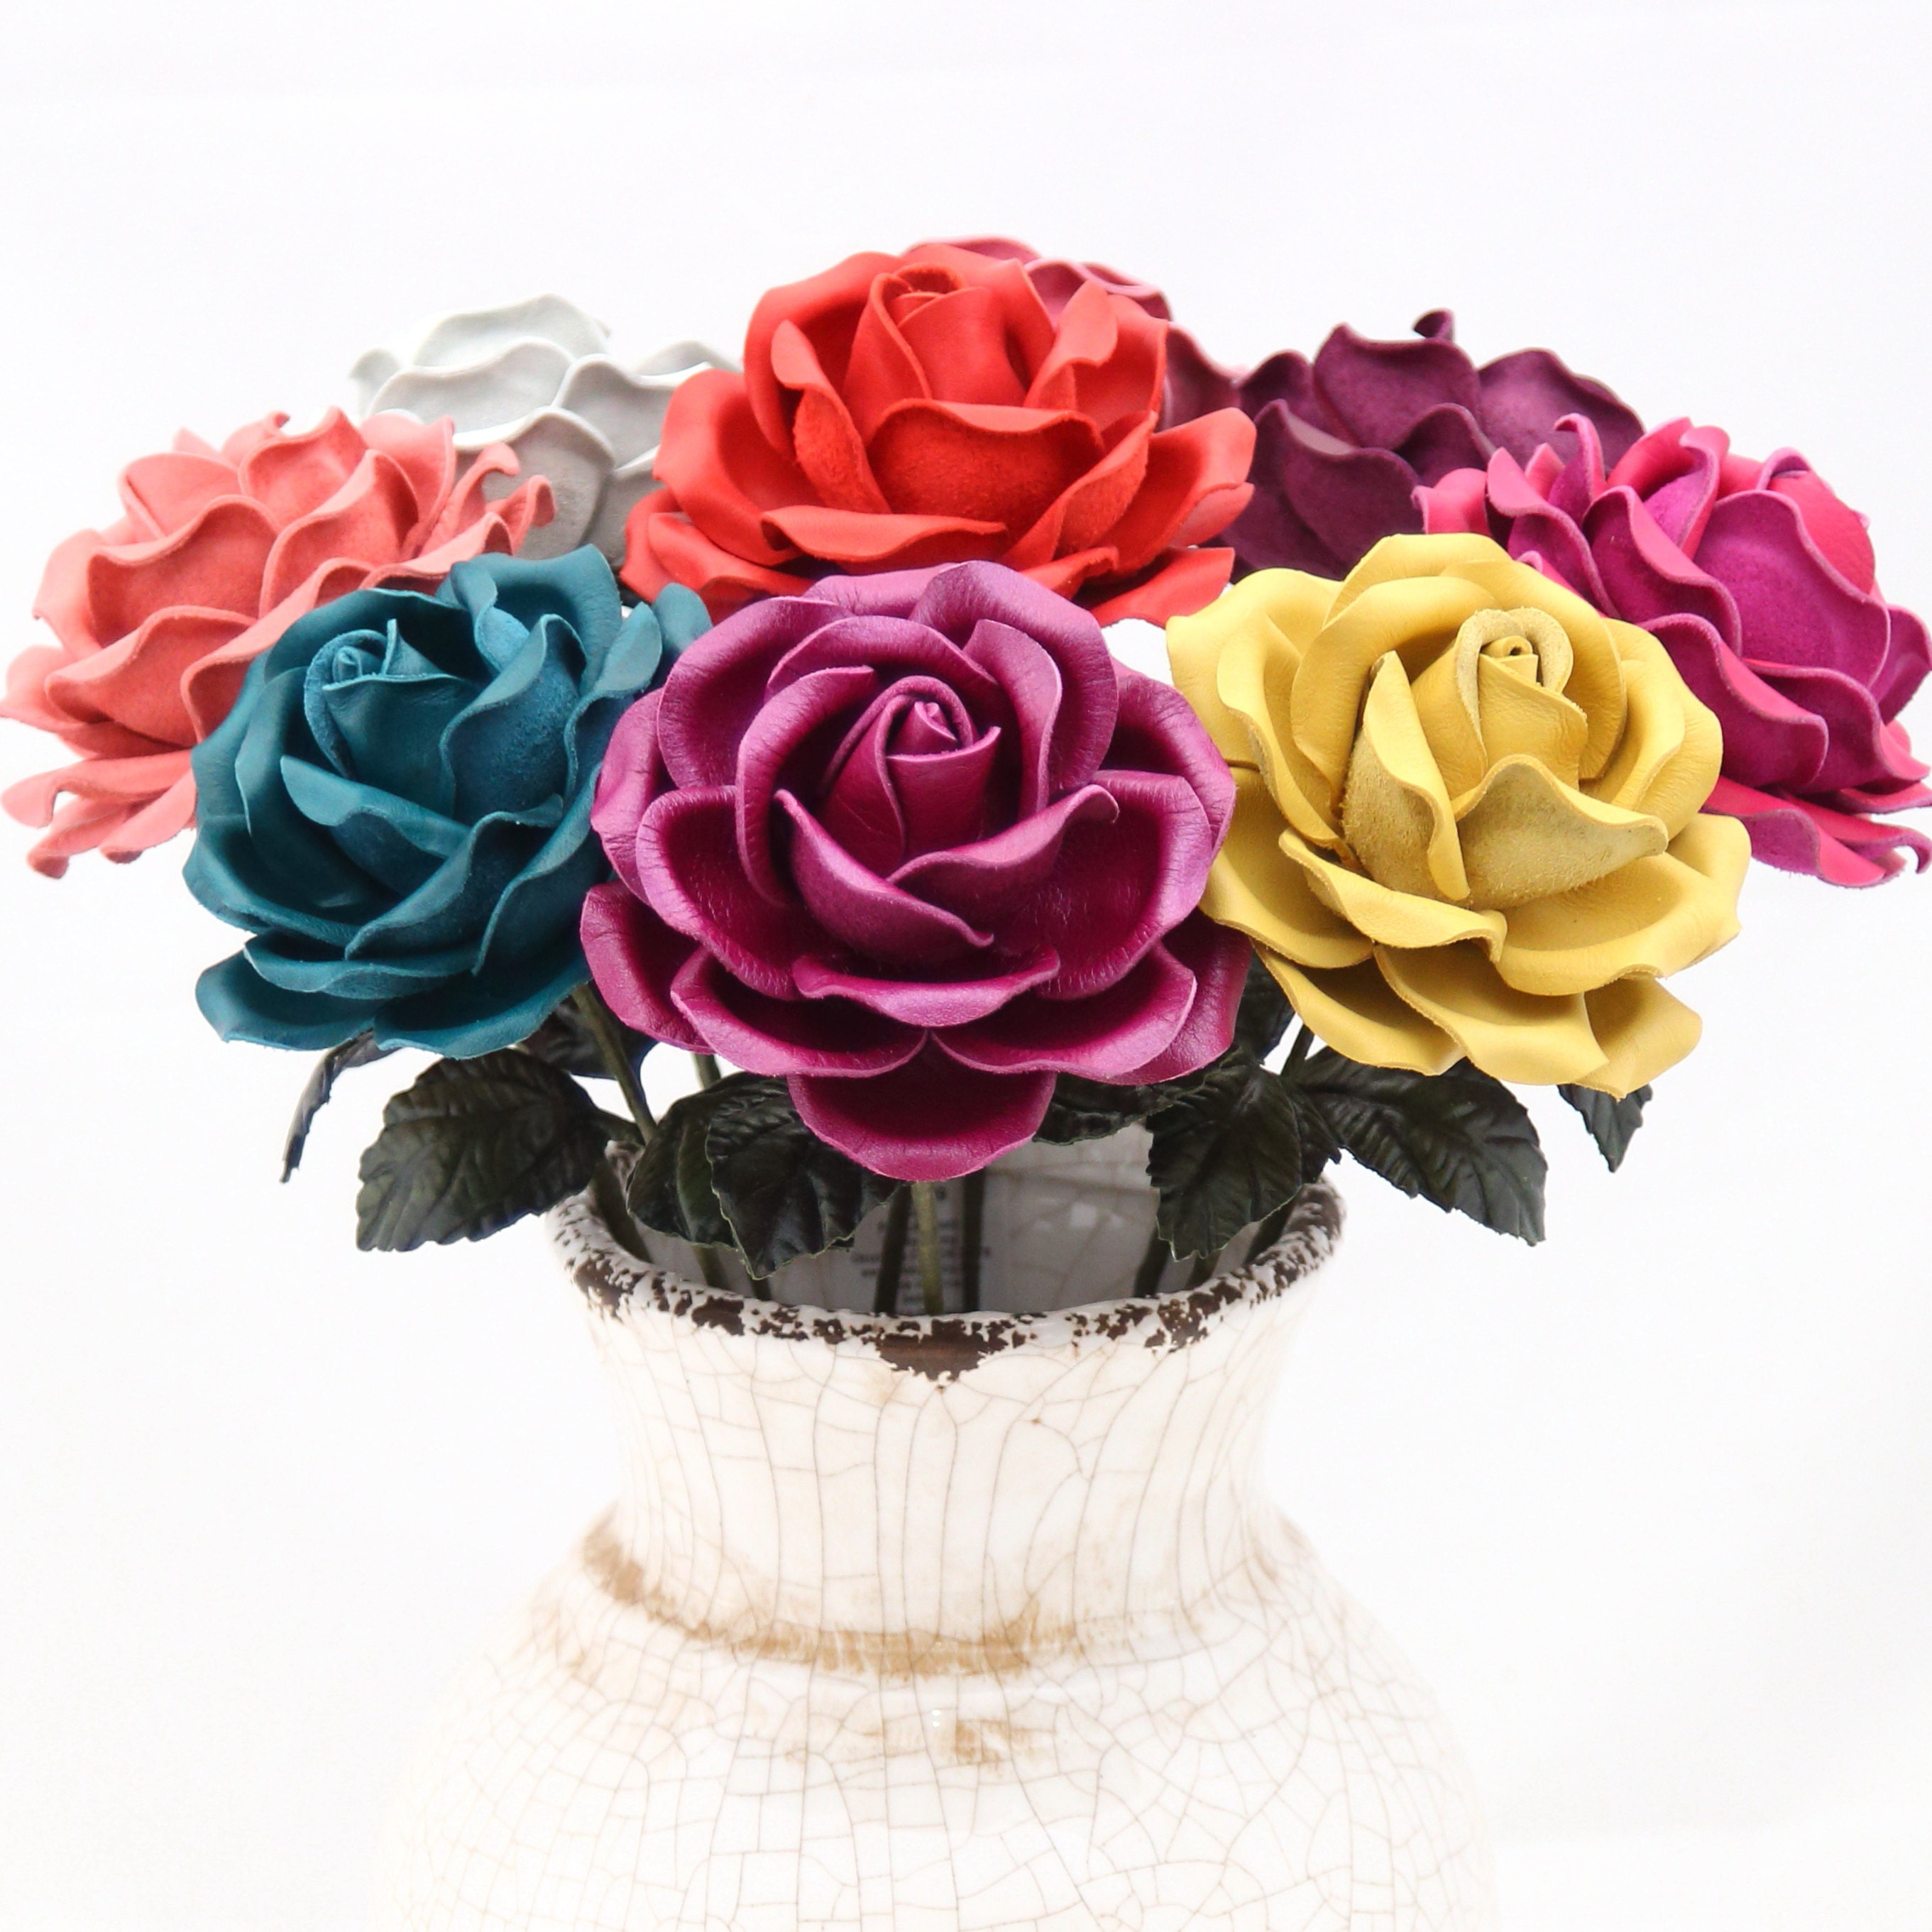 12 Leather Rose Bouquet Wedding3rd Anniversary Gift Long Stem Etsy